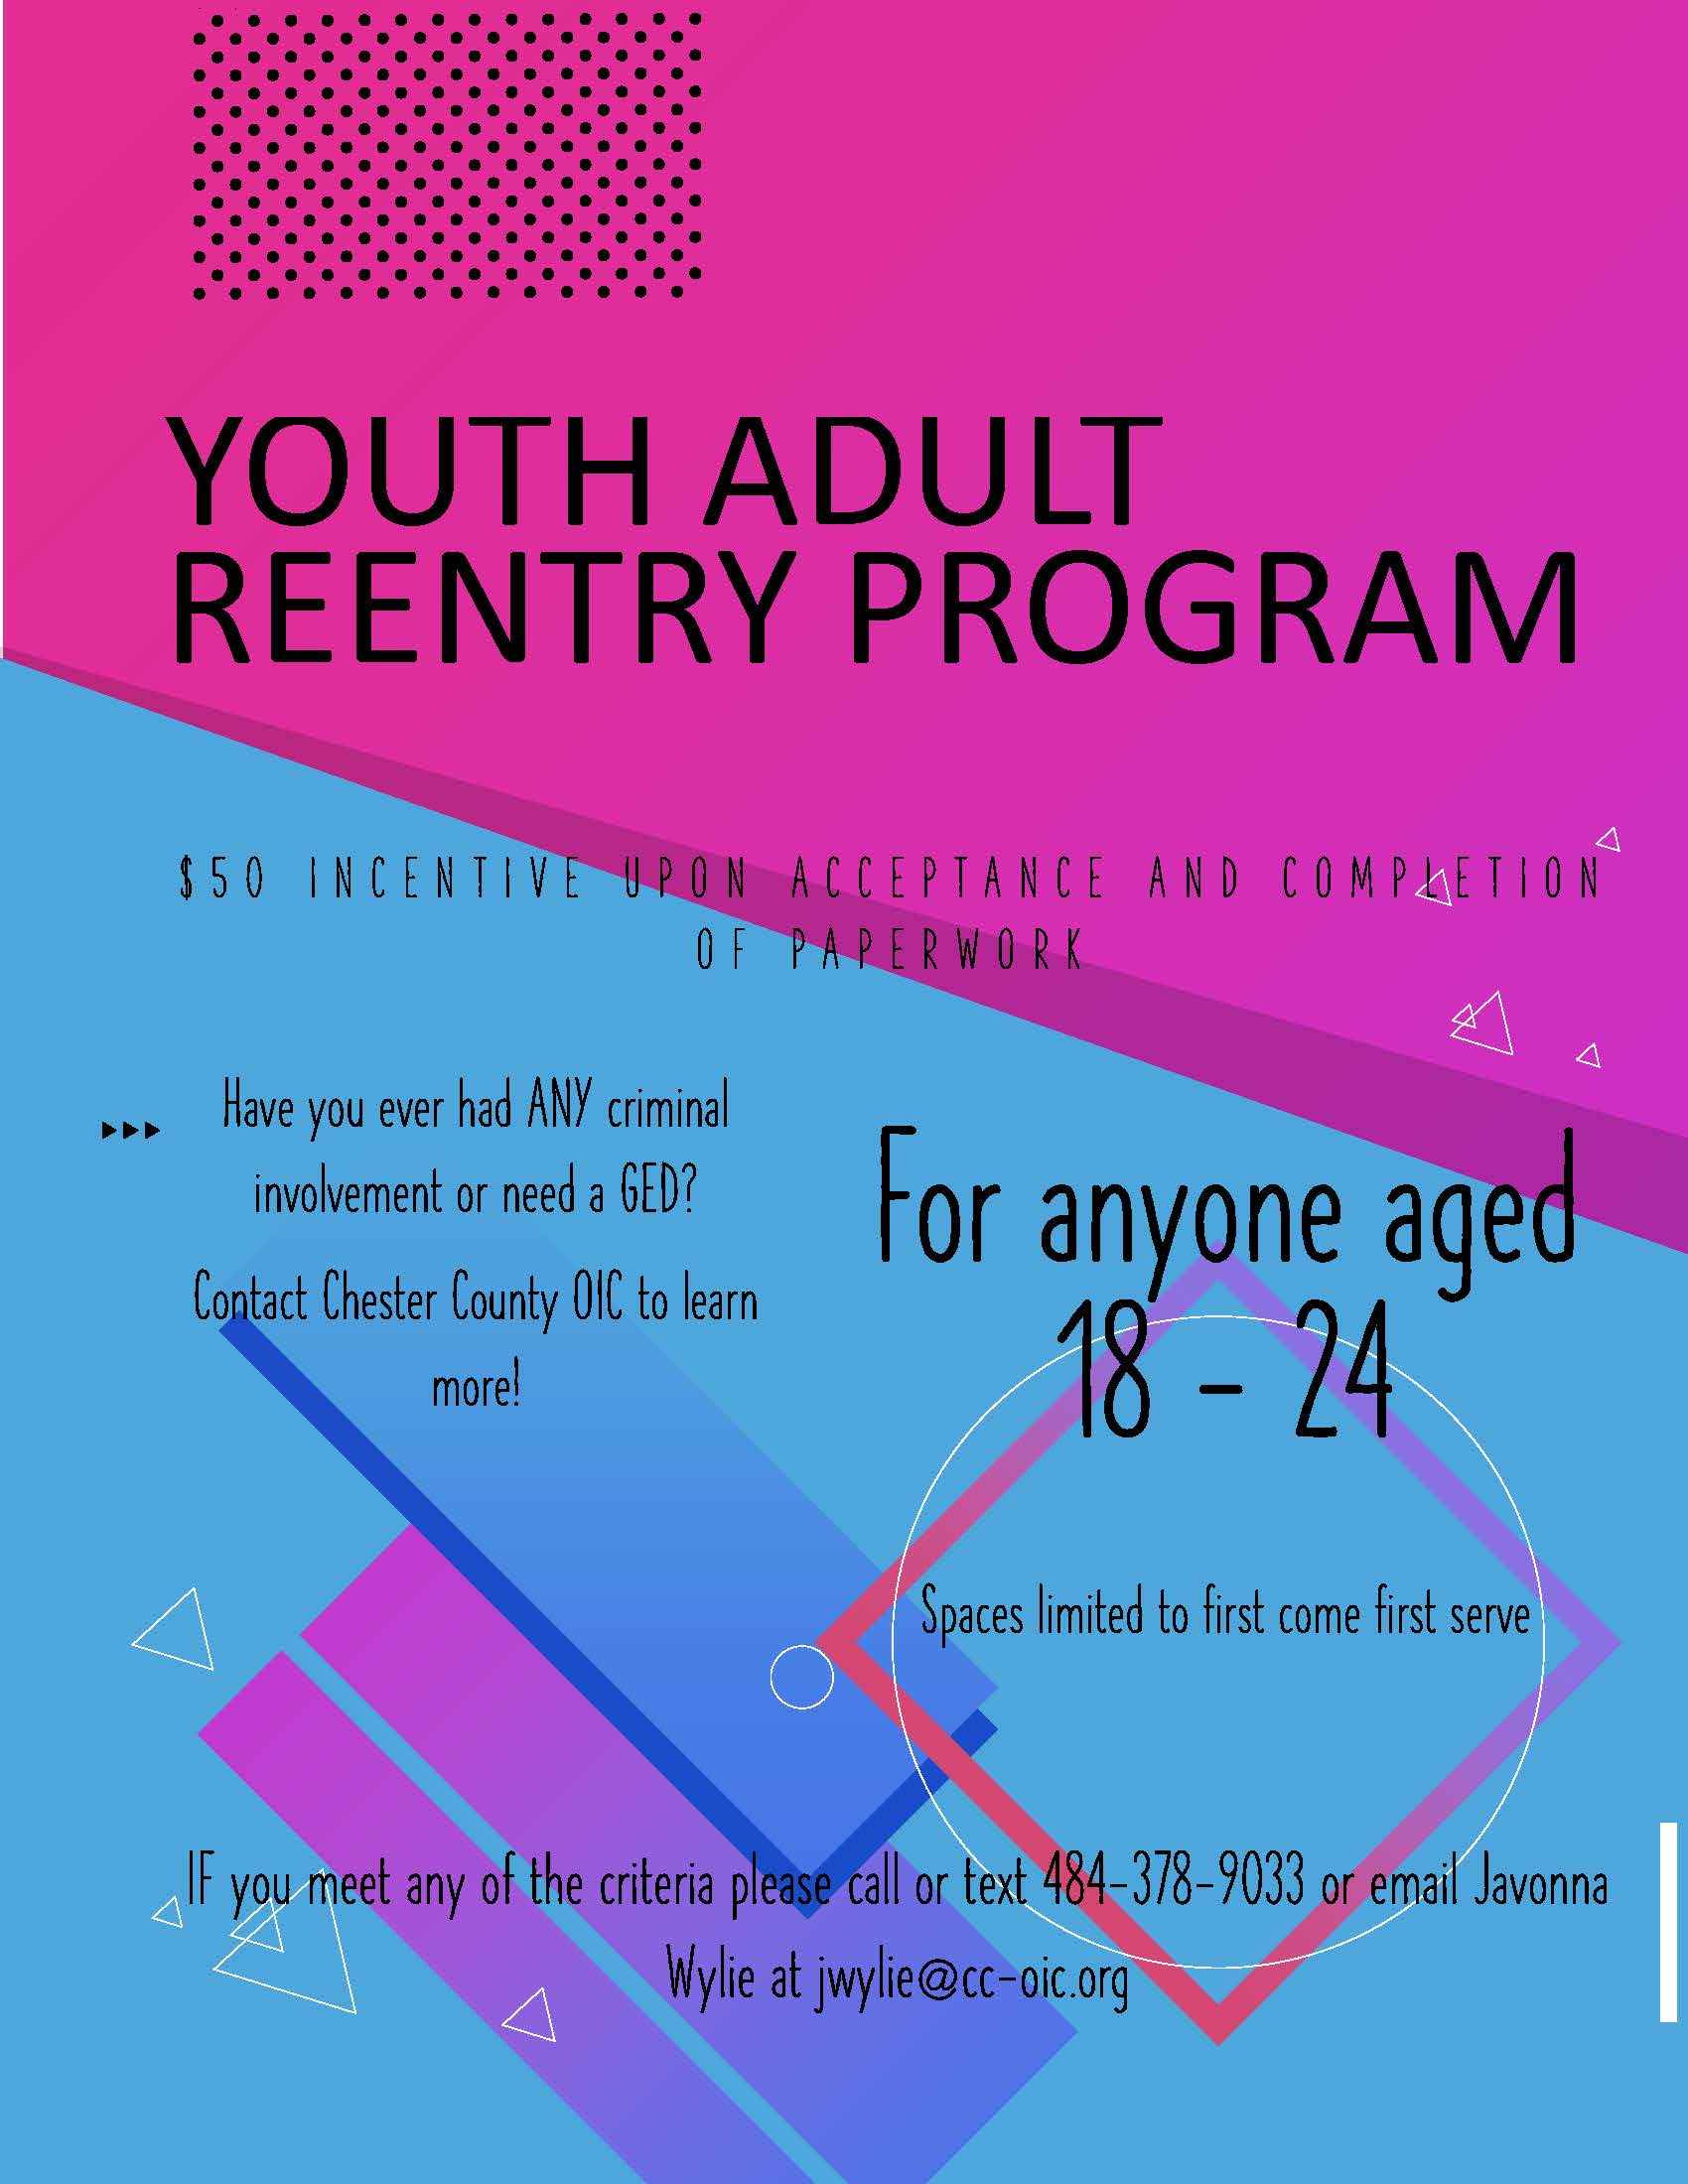 Youth/Adult Reentry Program